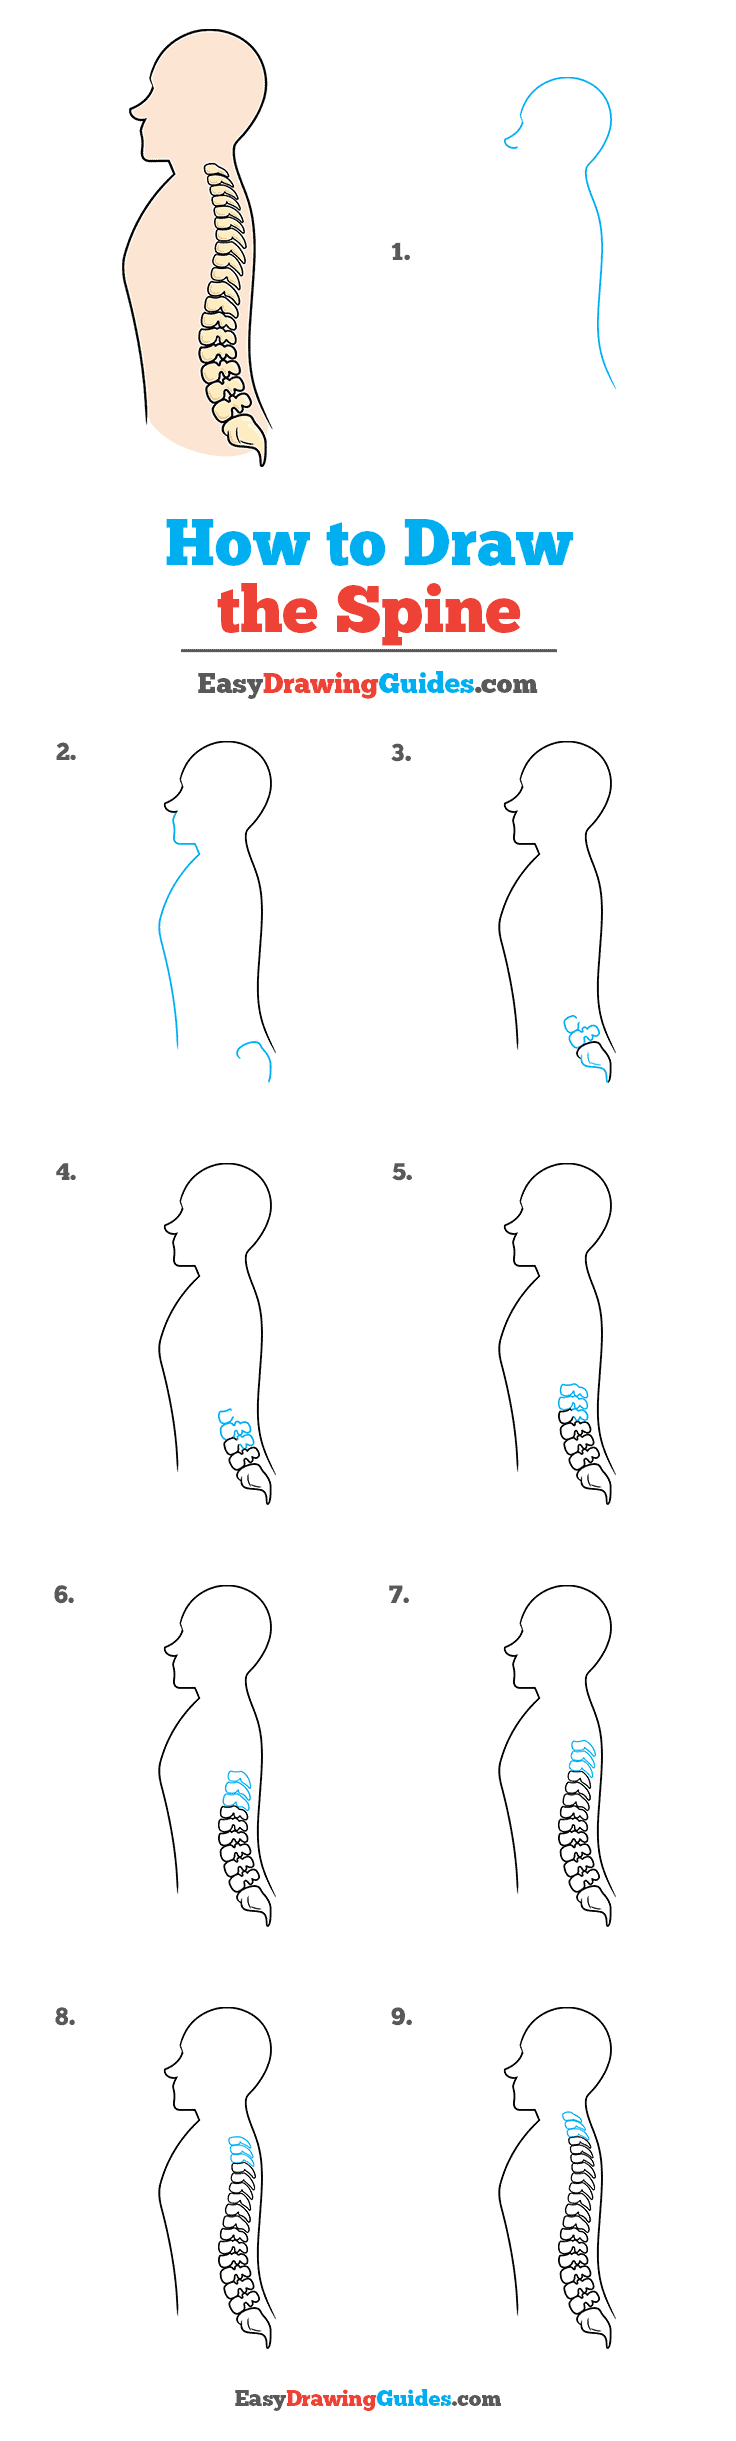 How to Draw the Spine Step by Step Tutorial Image